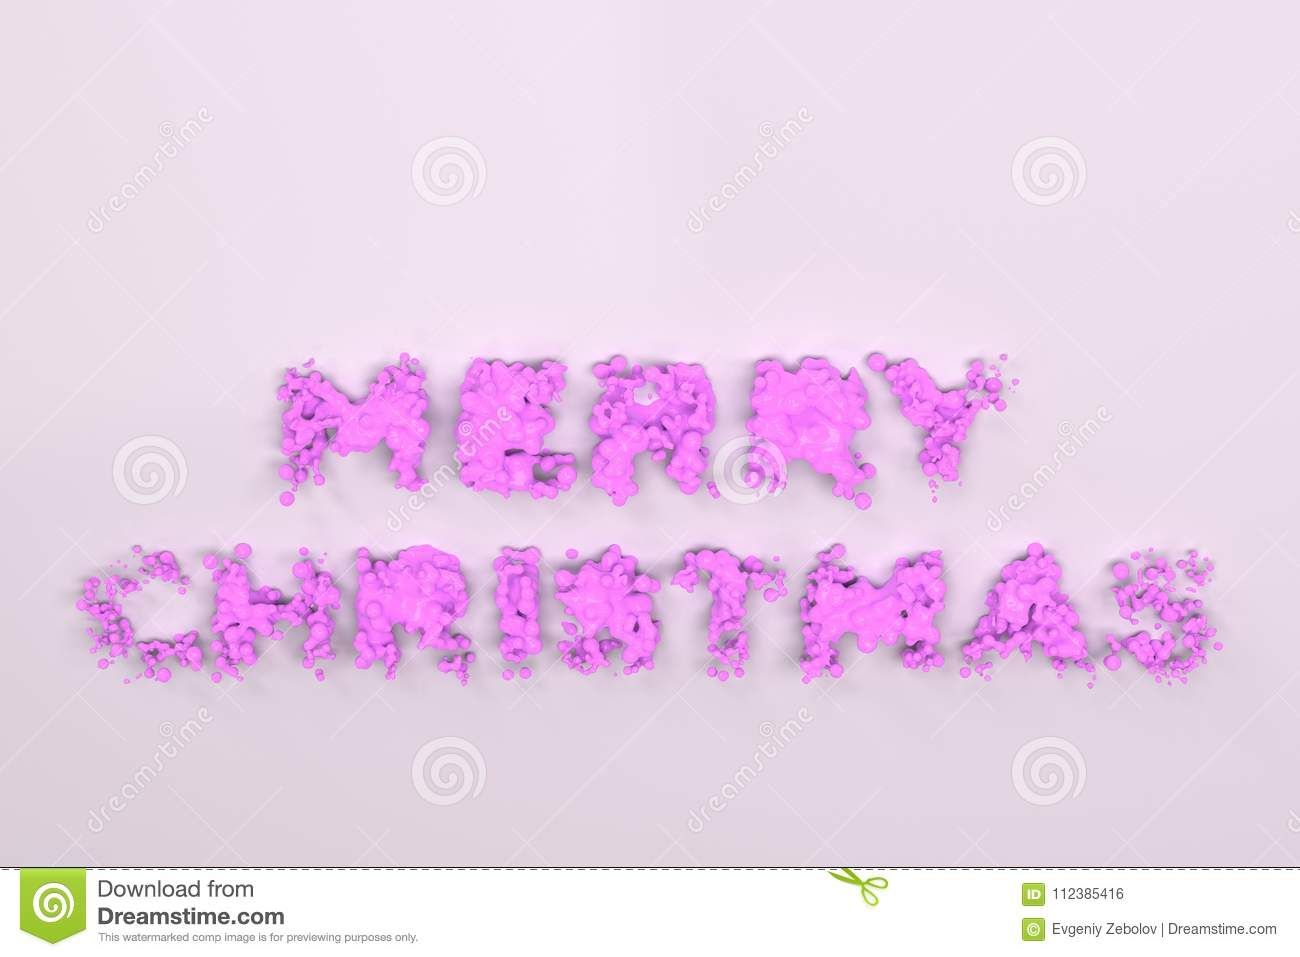 download liquid violet merry christmas words with drops on white background stock illustration illustration of